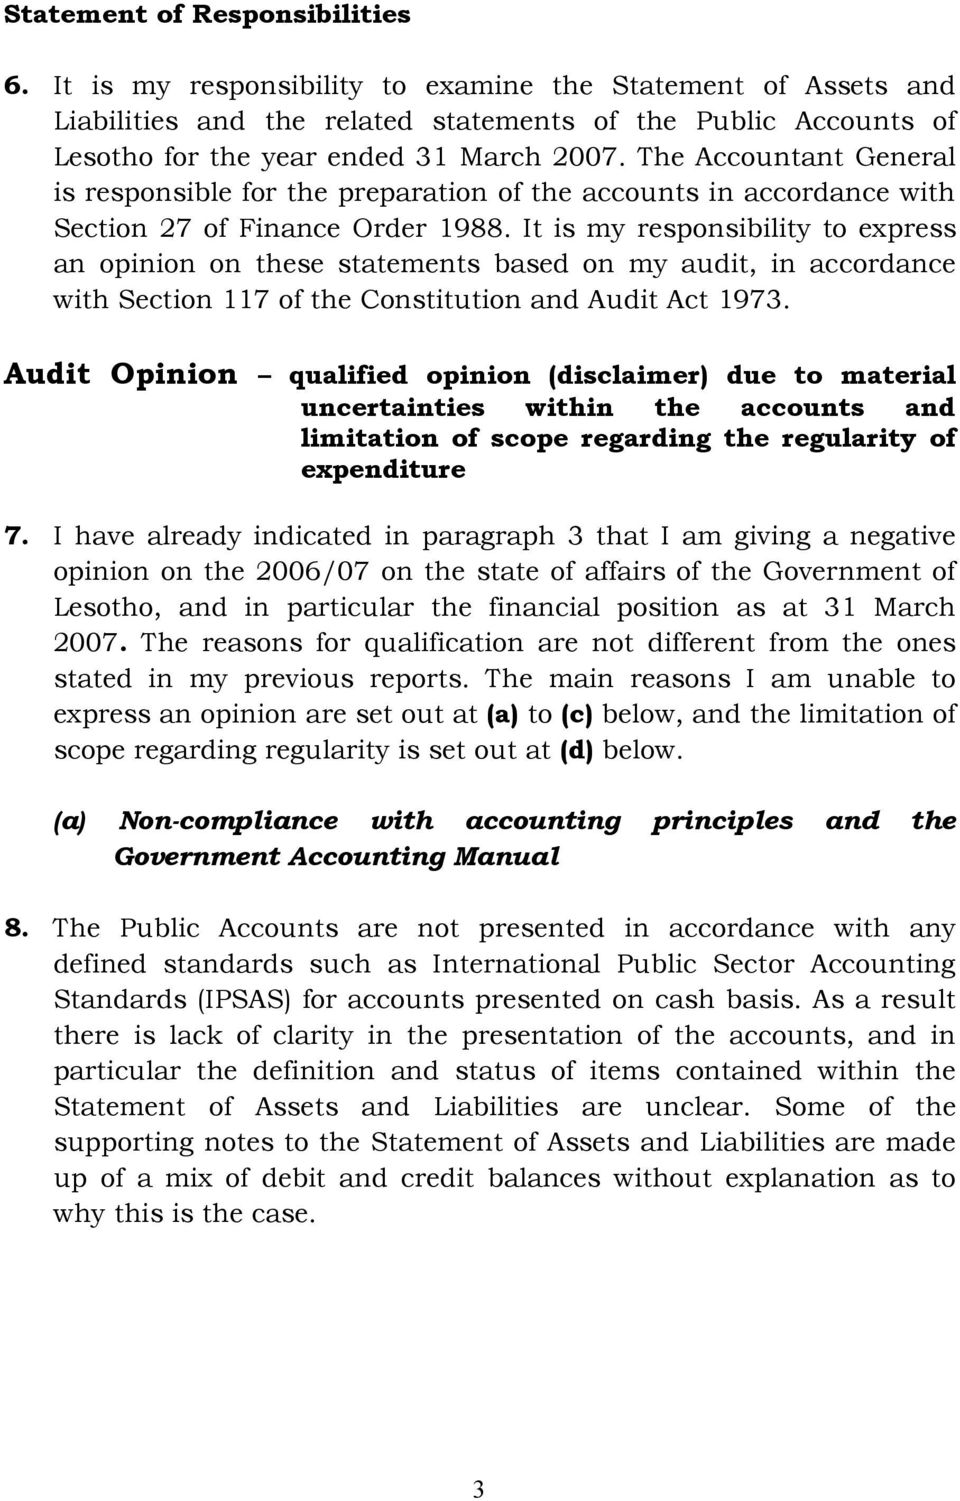 The Accountant General is responsible for the preparation of the accounts in accordance with Section 27 of Finance Order 1988.